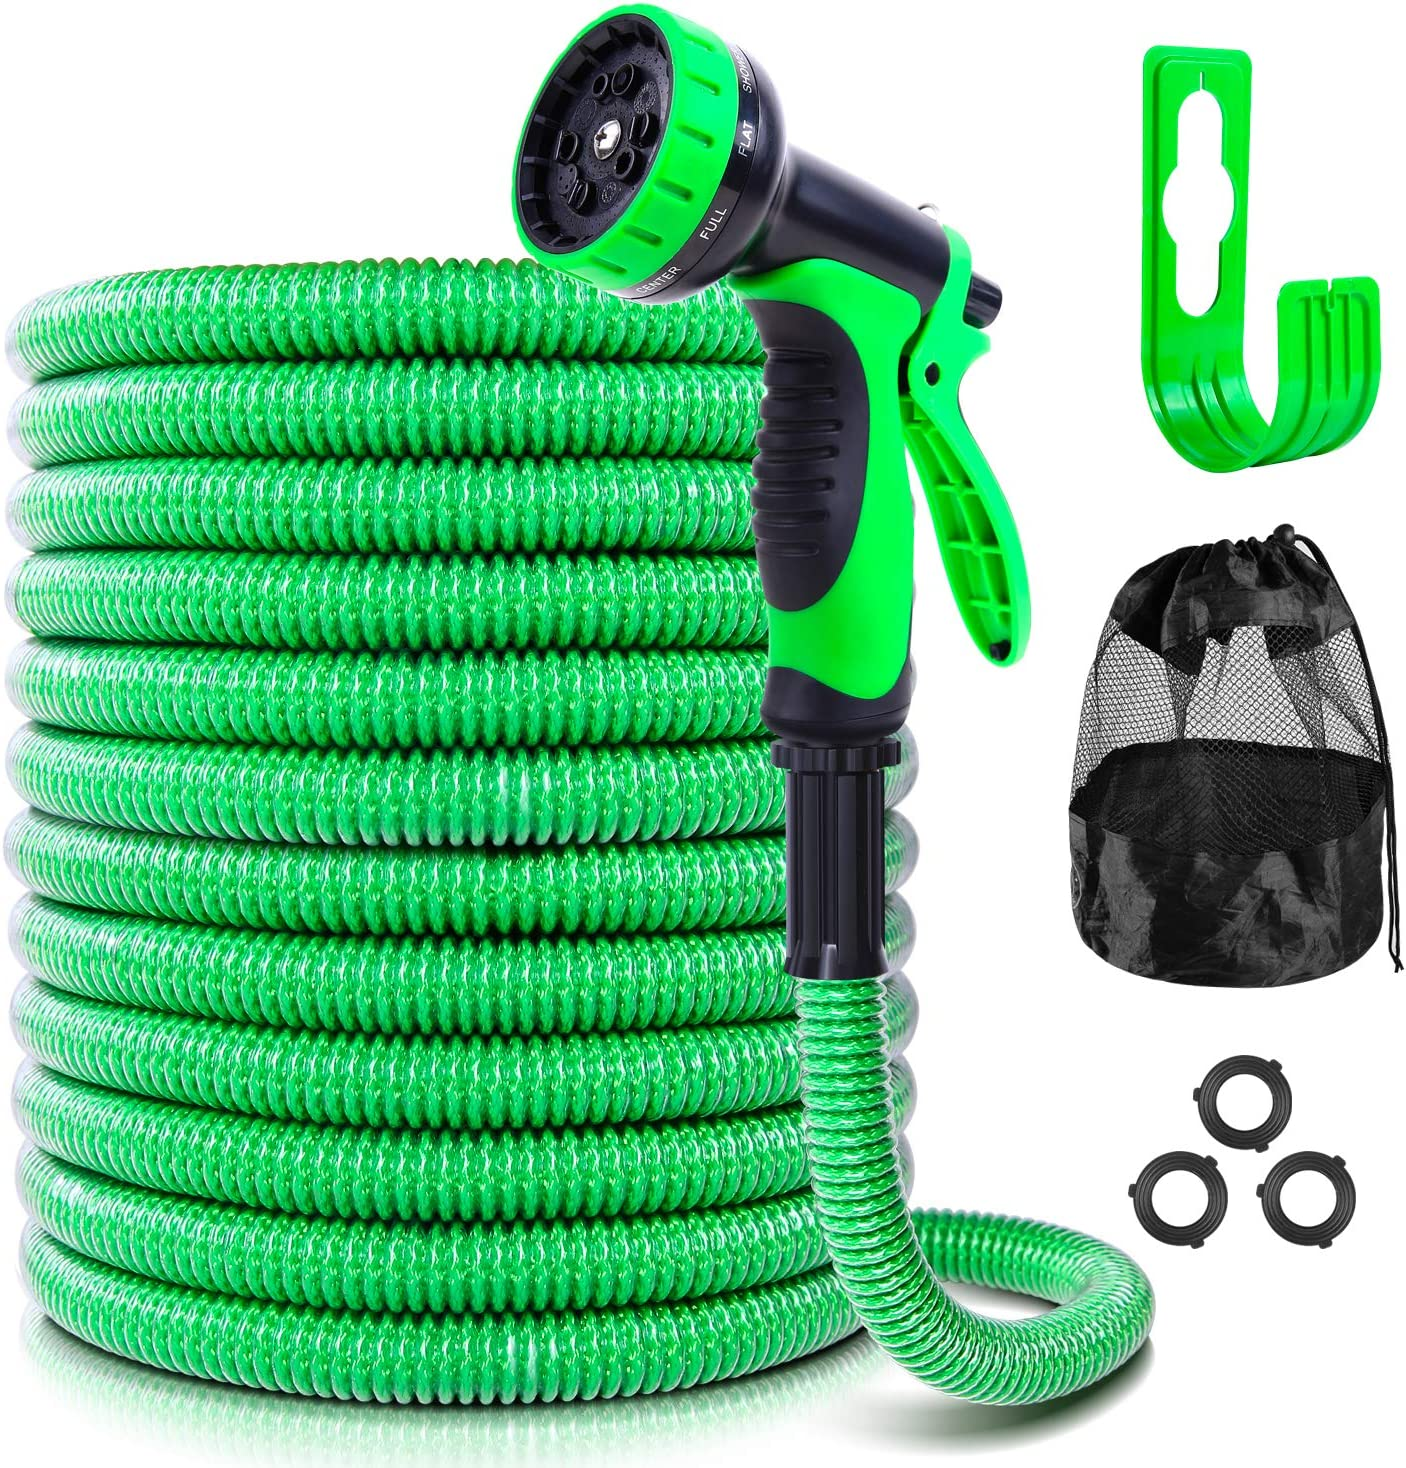 Garden Hose with 10-Function Dealing Direct store full price reduction Spray FT Ohuhu Nozzle Patented 25